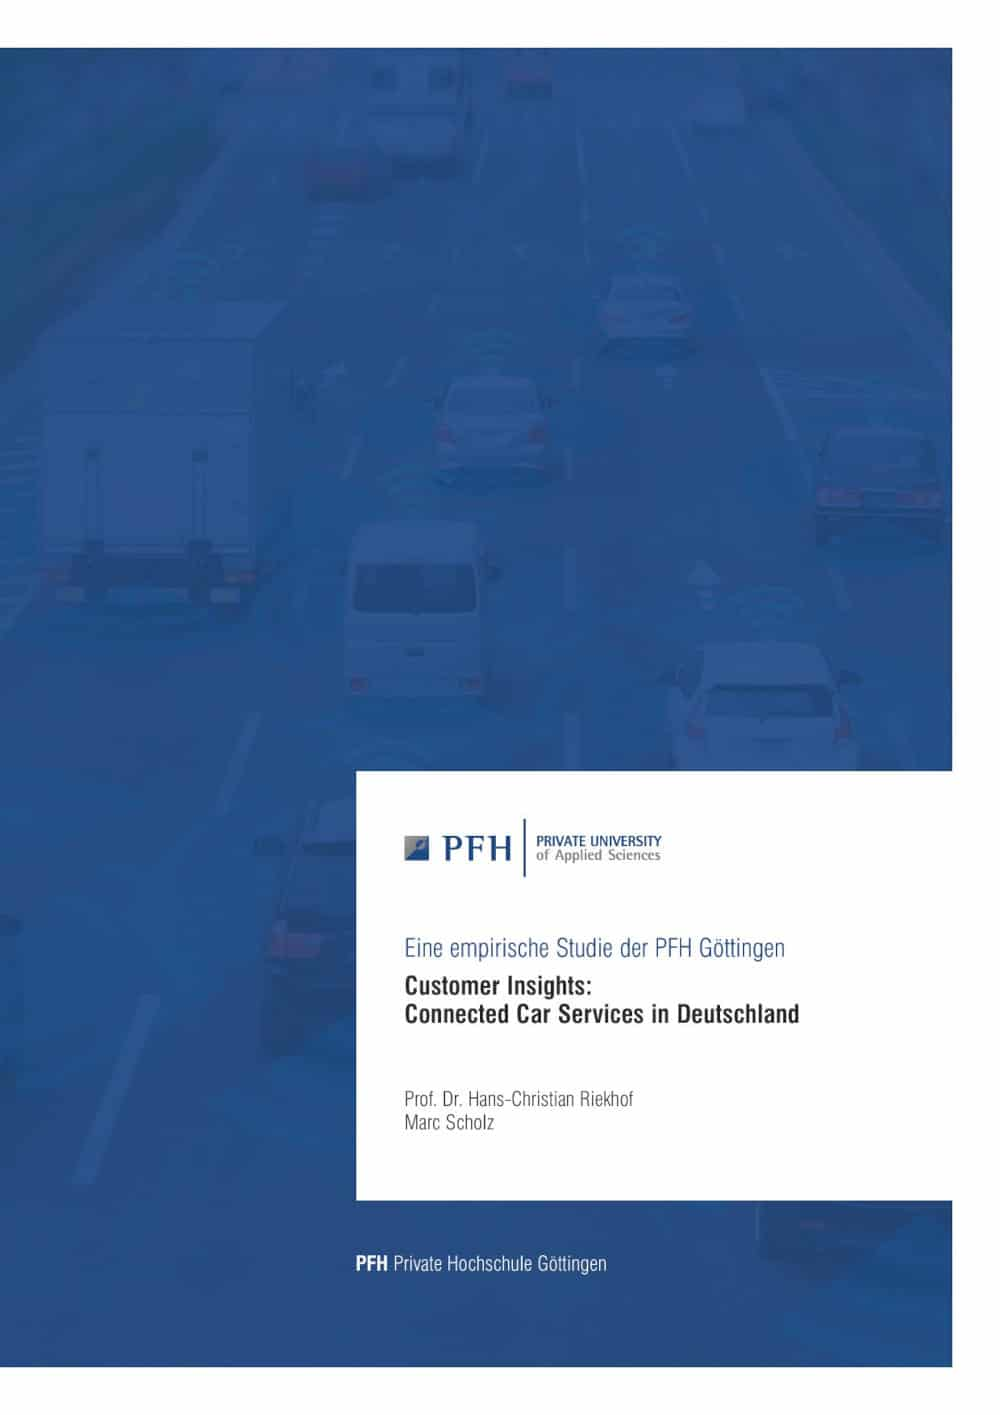 PFH Studie Connected Car Services Riekhof Scholz 2020